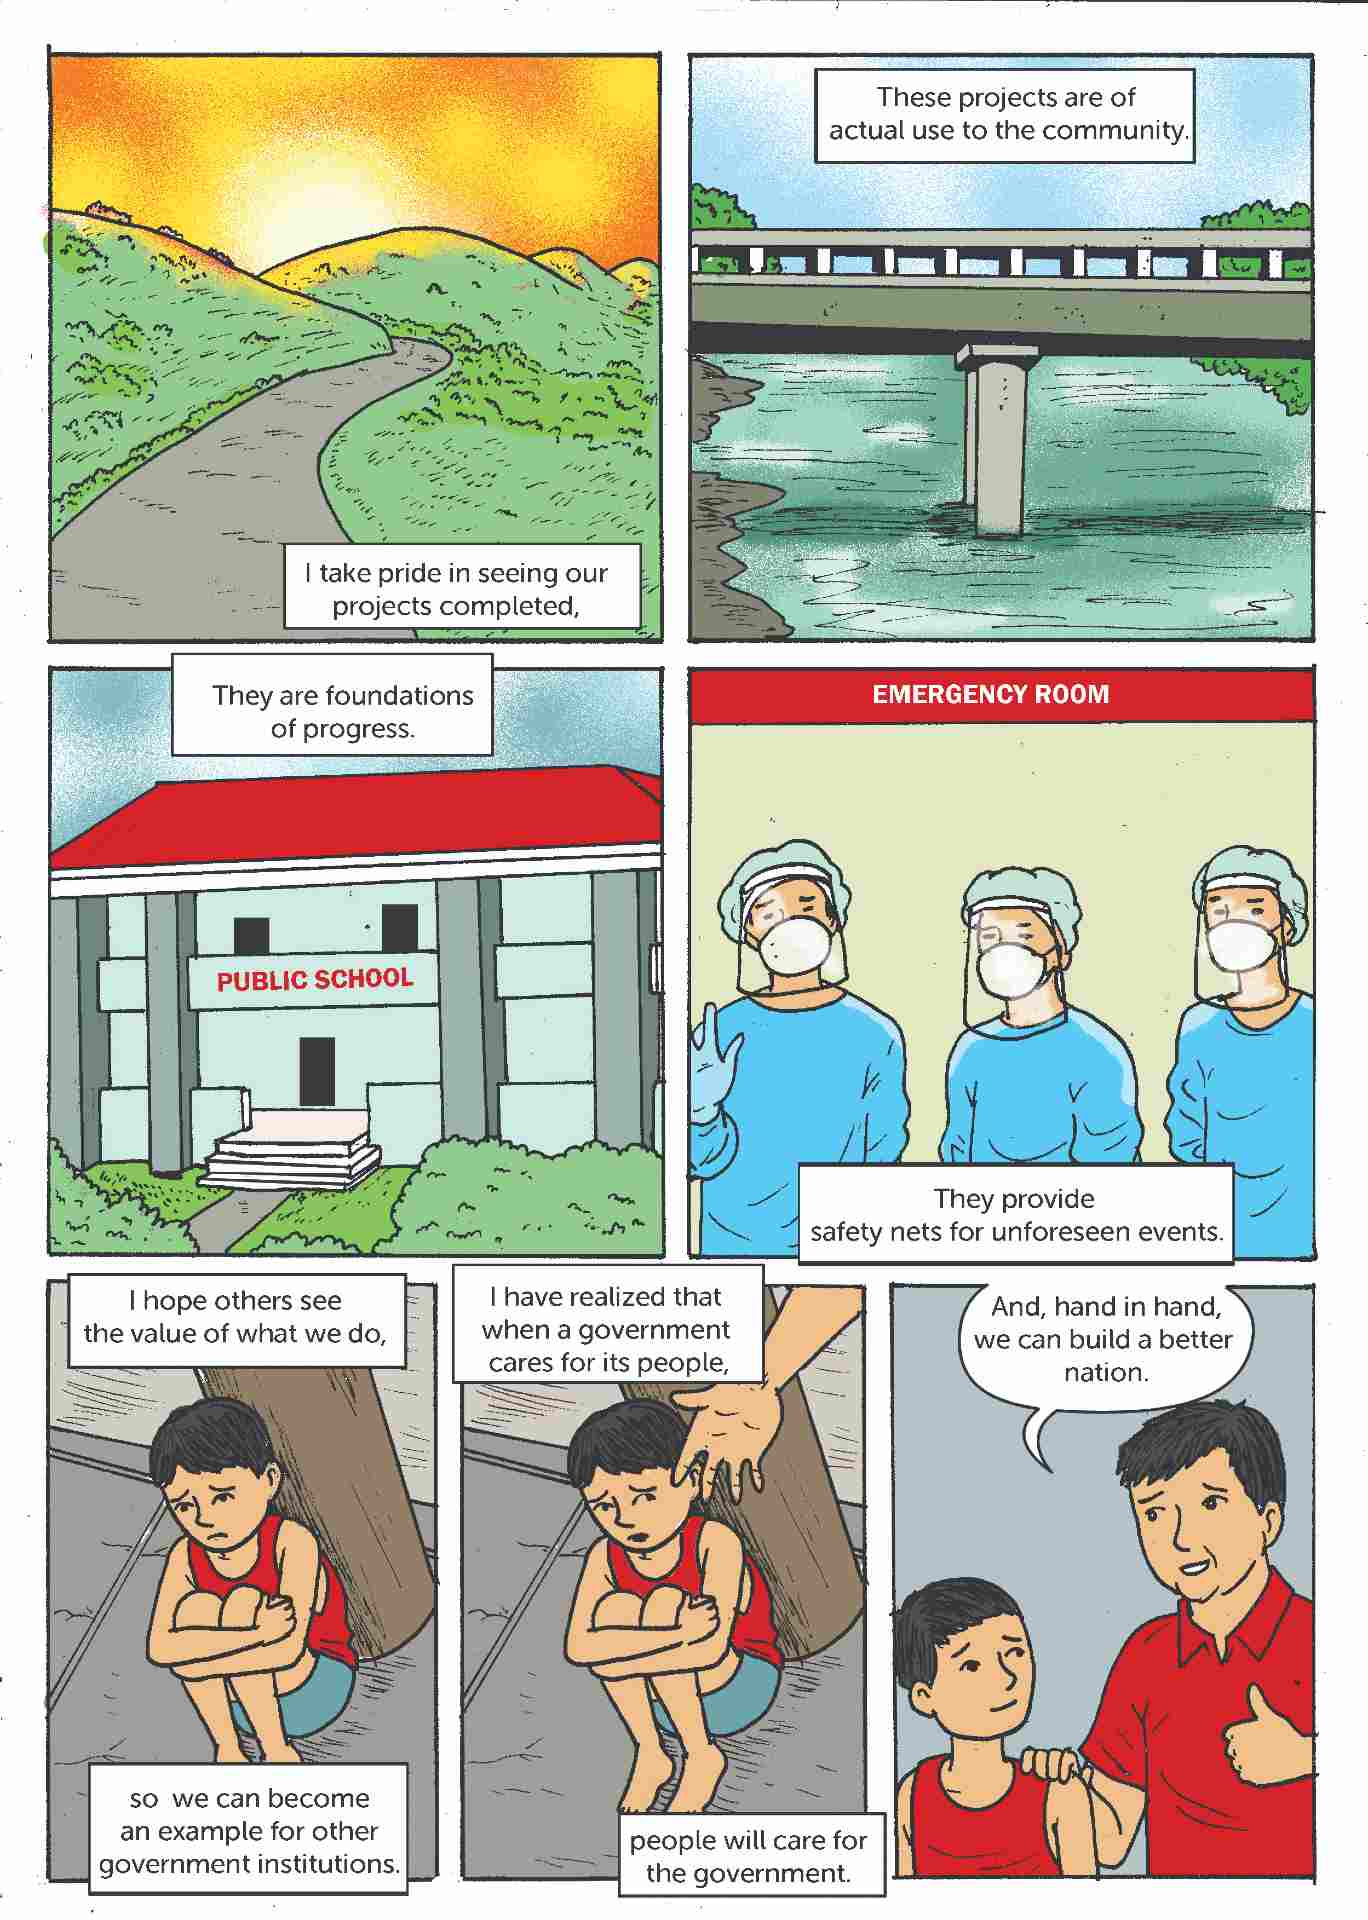 Comic strip about open contracting in the Philippines 6